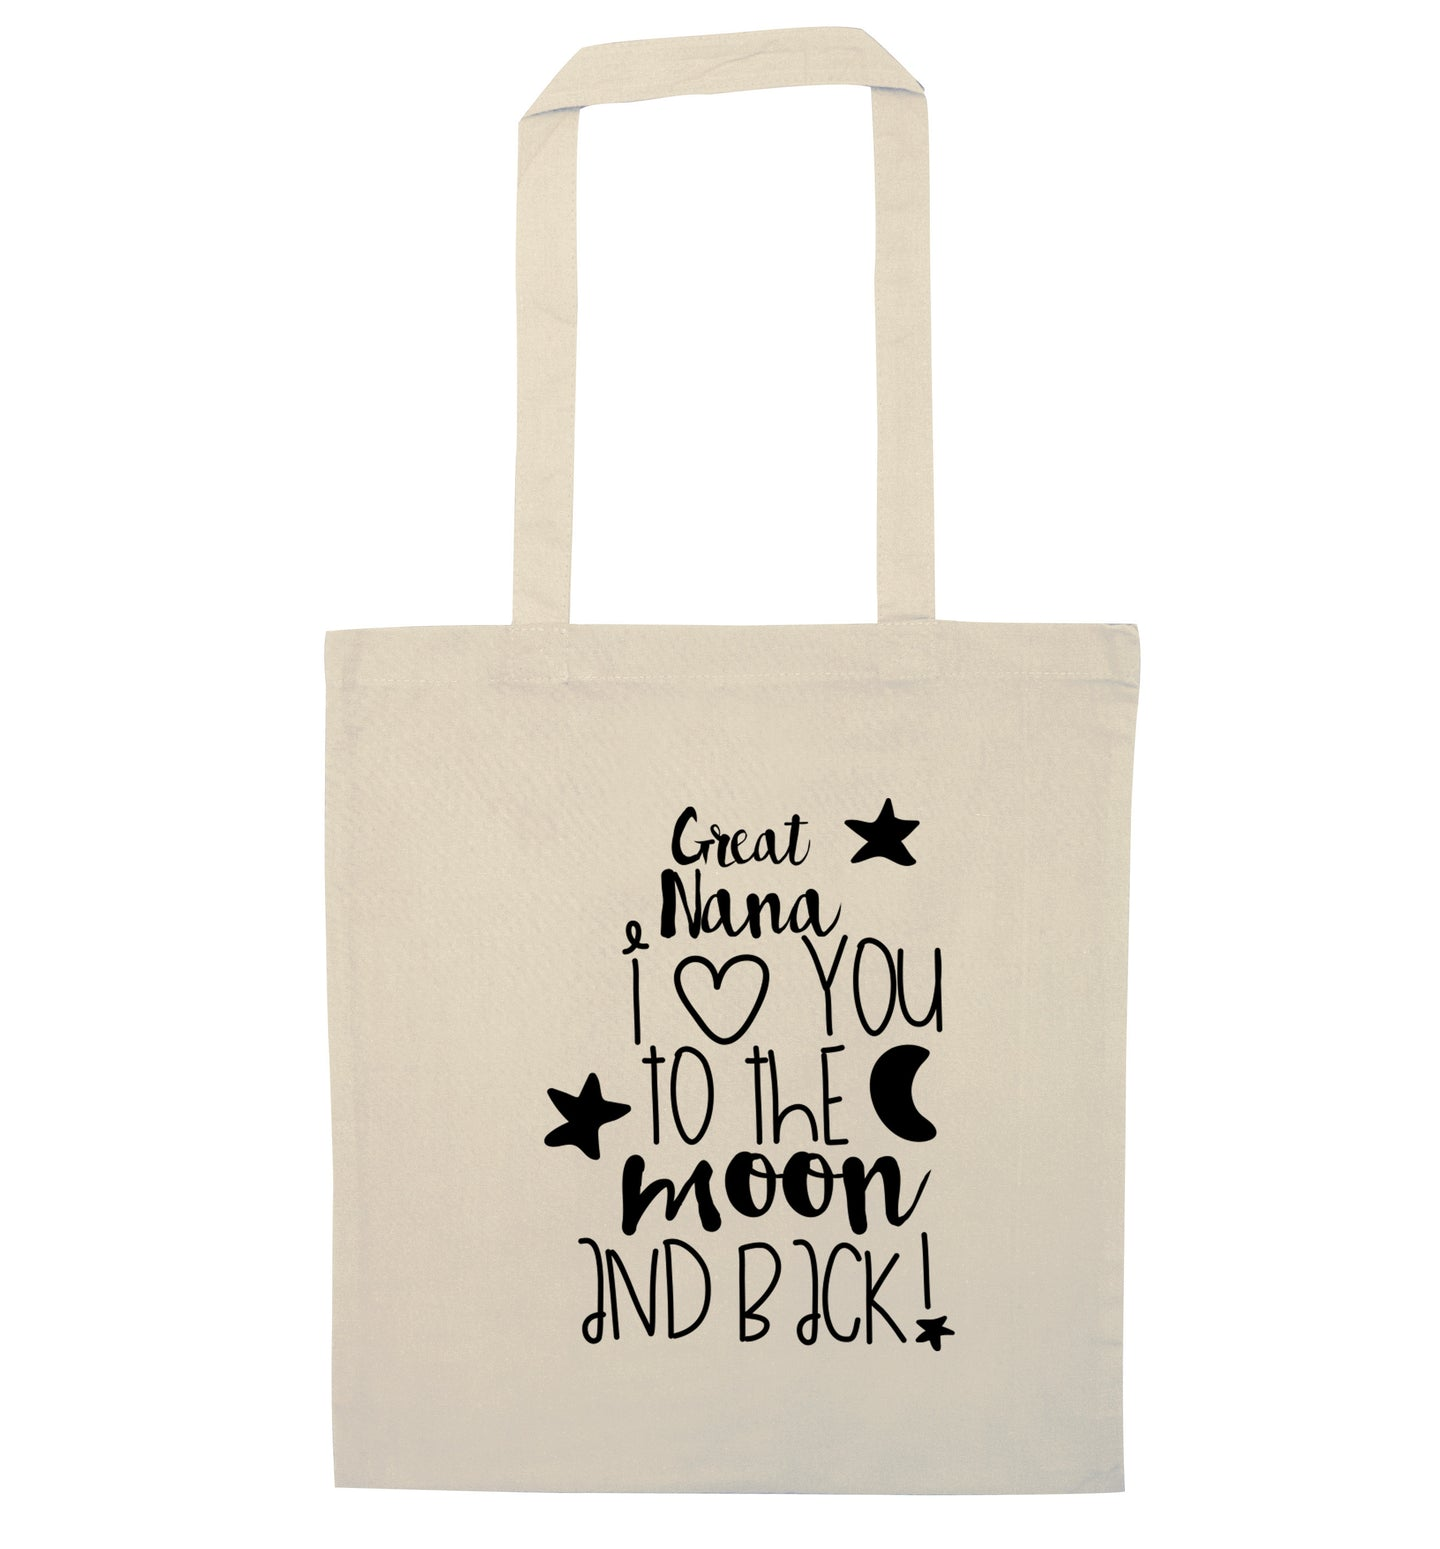 Great Nana I love you to the moon and back natural tote bag